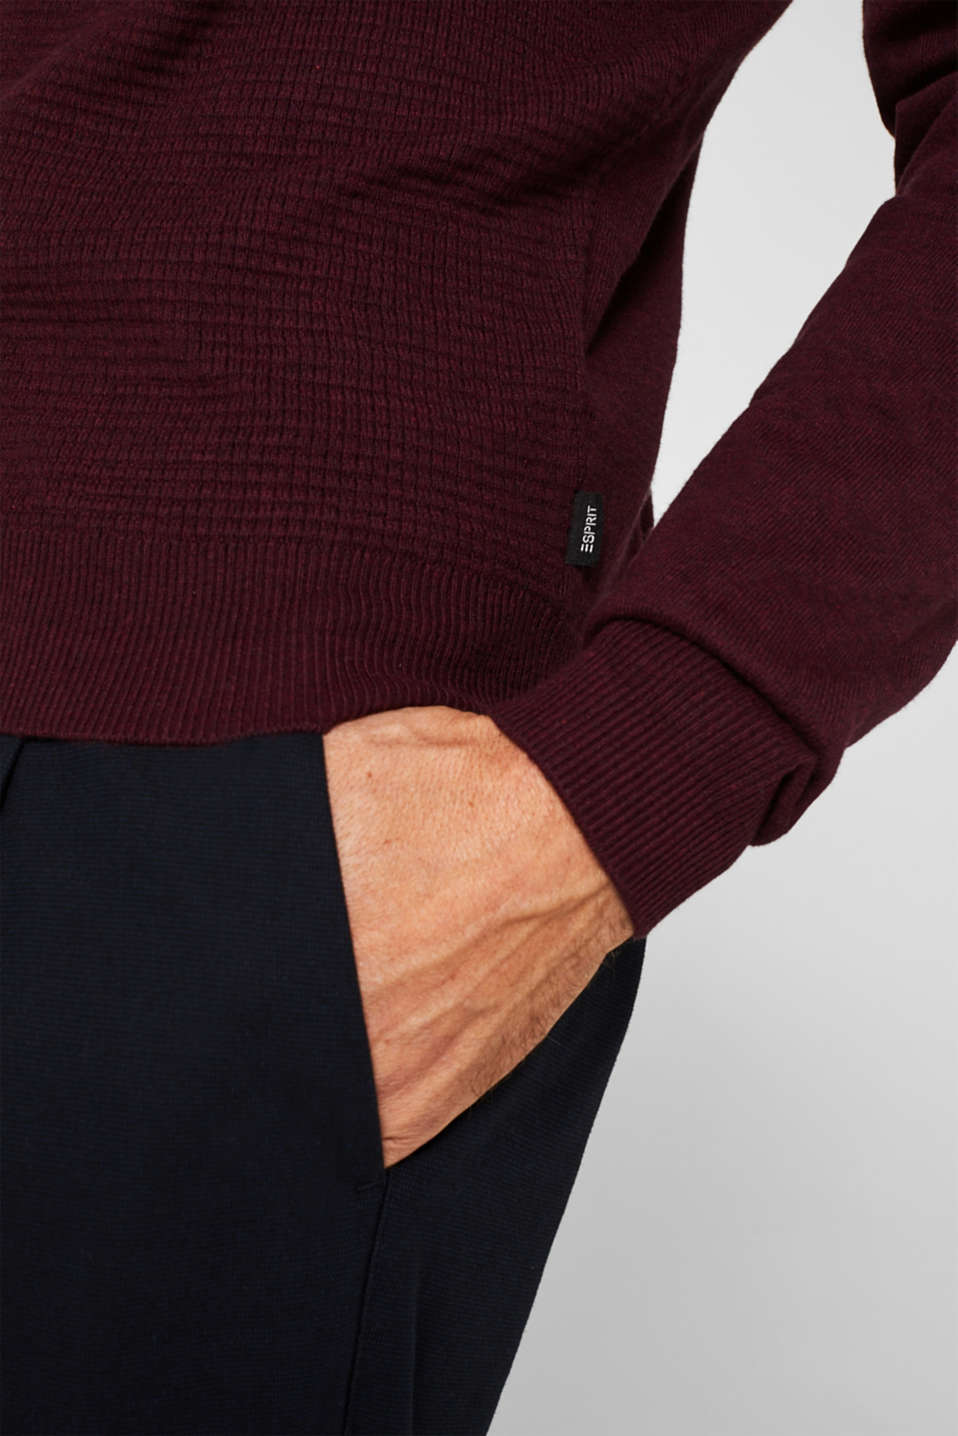 Cashmere blend: textured knit jumper, BORDEAUX RED 5, detail image number 2